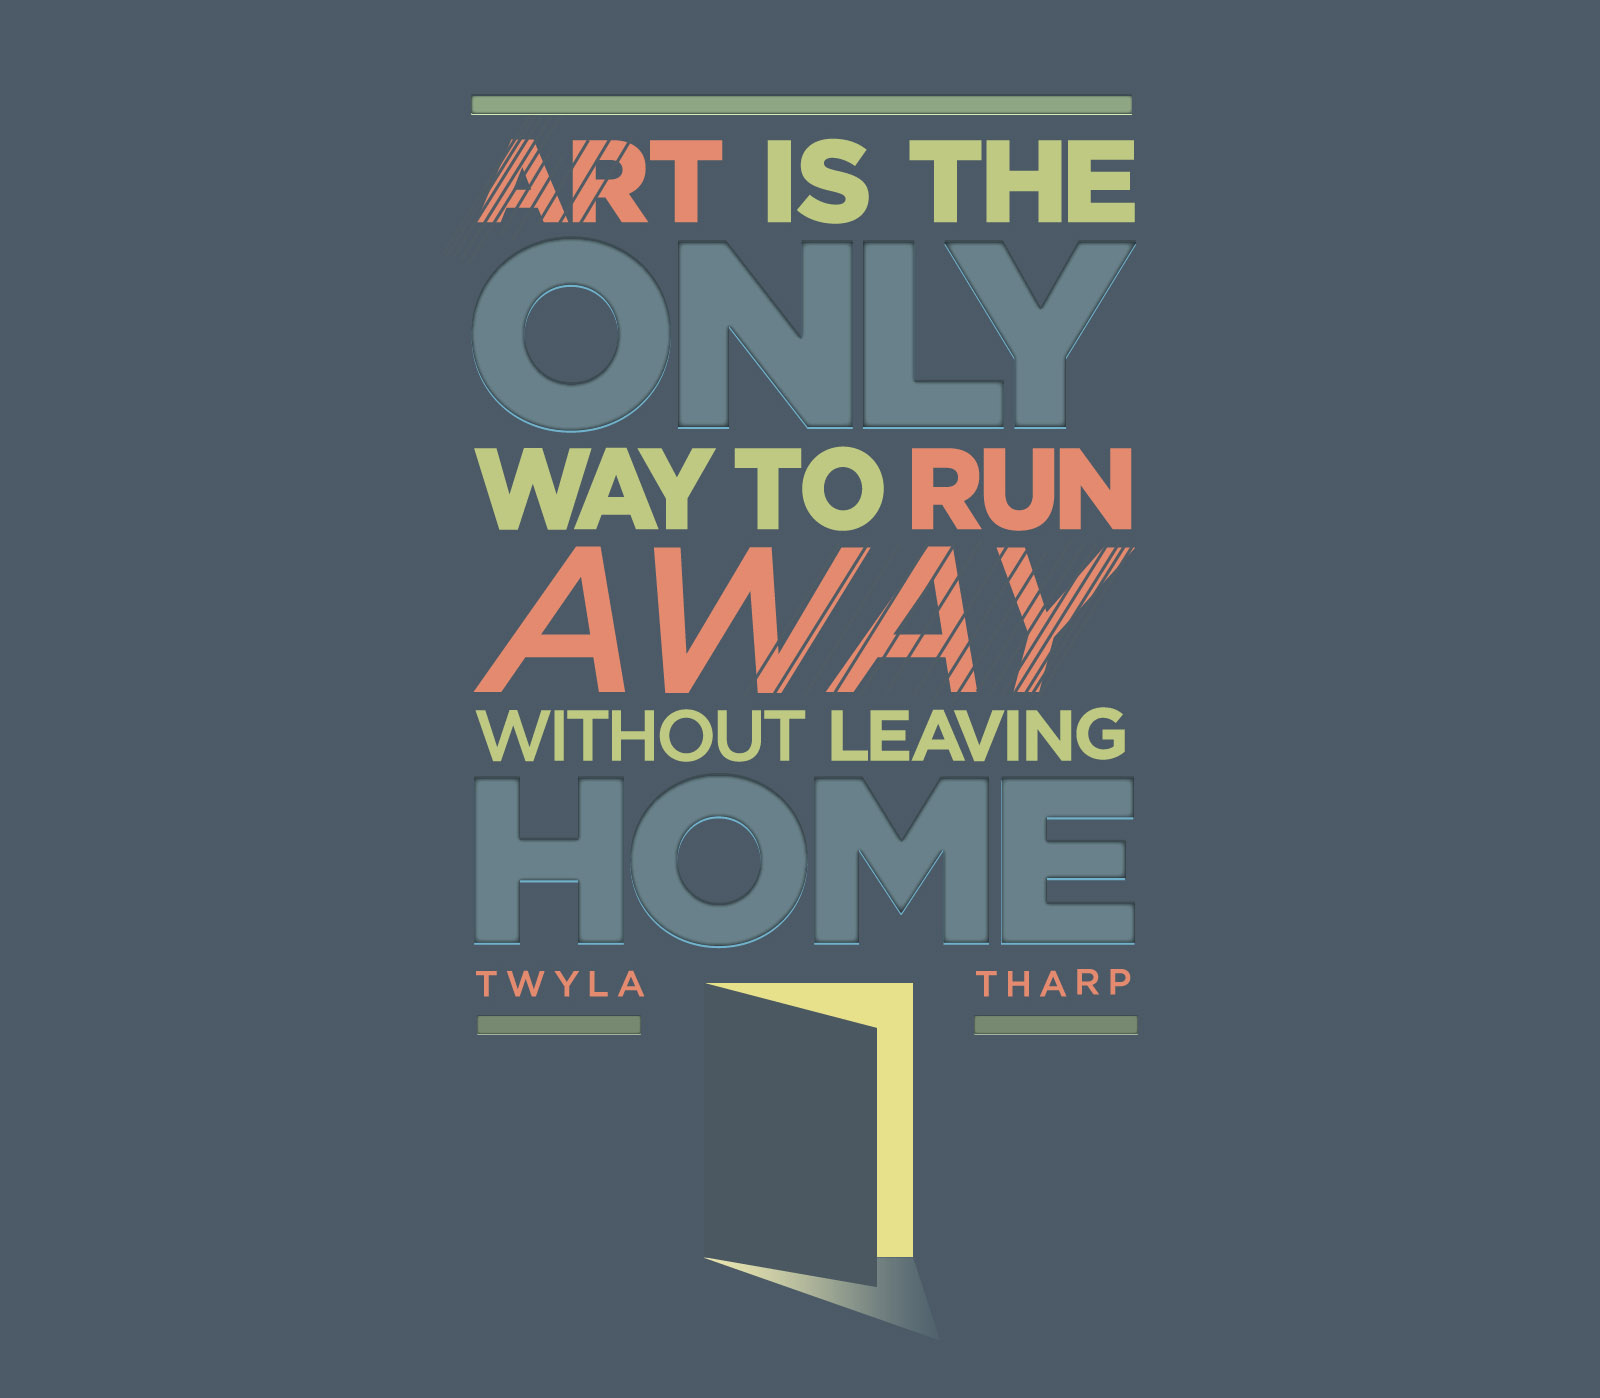 Art is the only way to run away without leaving home. Twyla Tharp